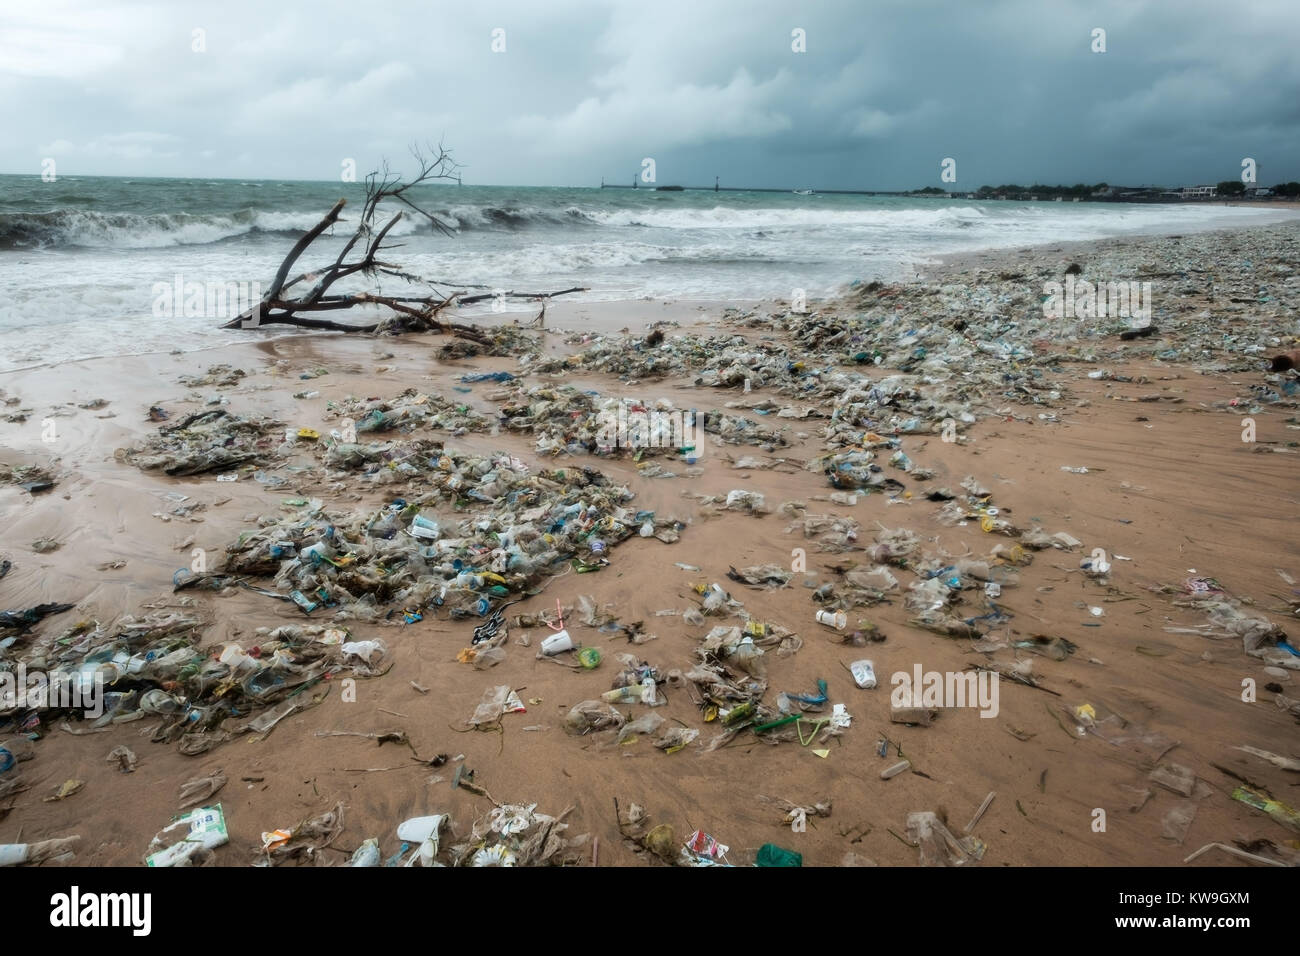 Bali, Indonesia - December 19, 2017: Garbage on beach, environmental pollution in Bali Indonesia. Storm is coming - Stock Image